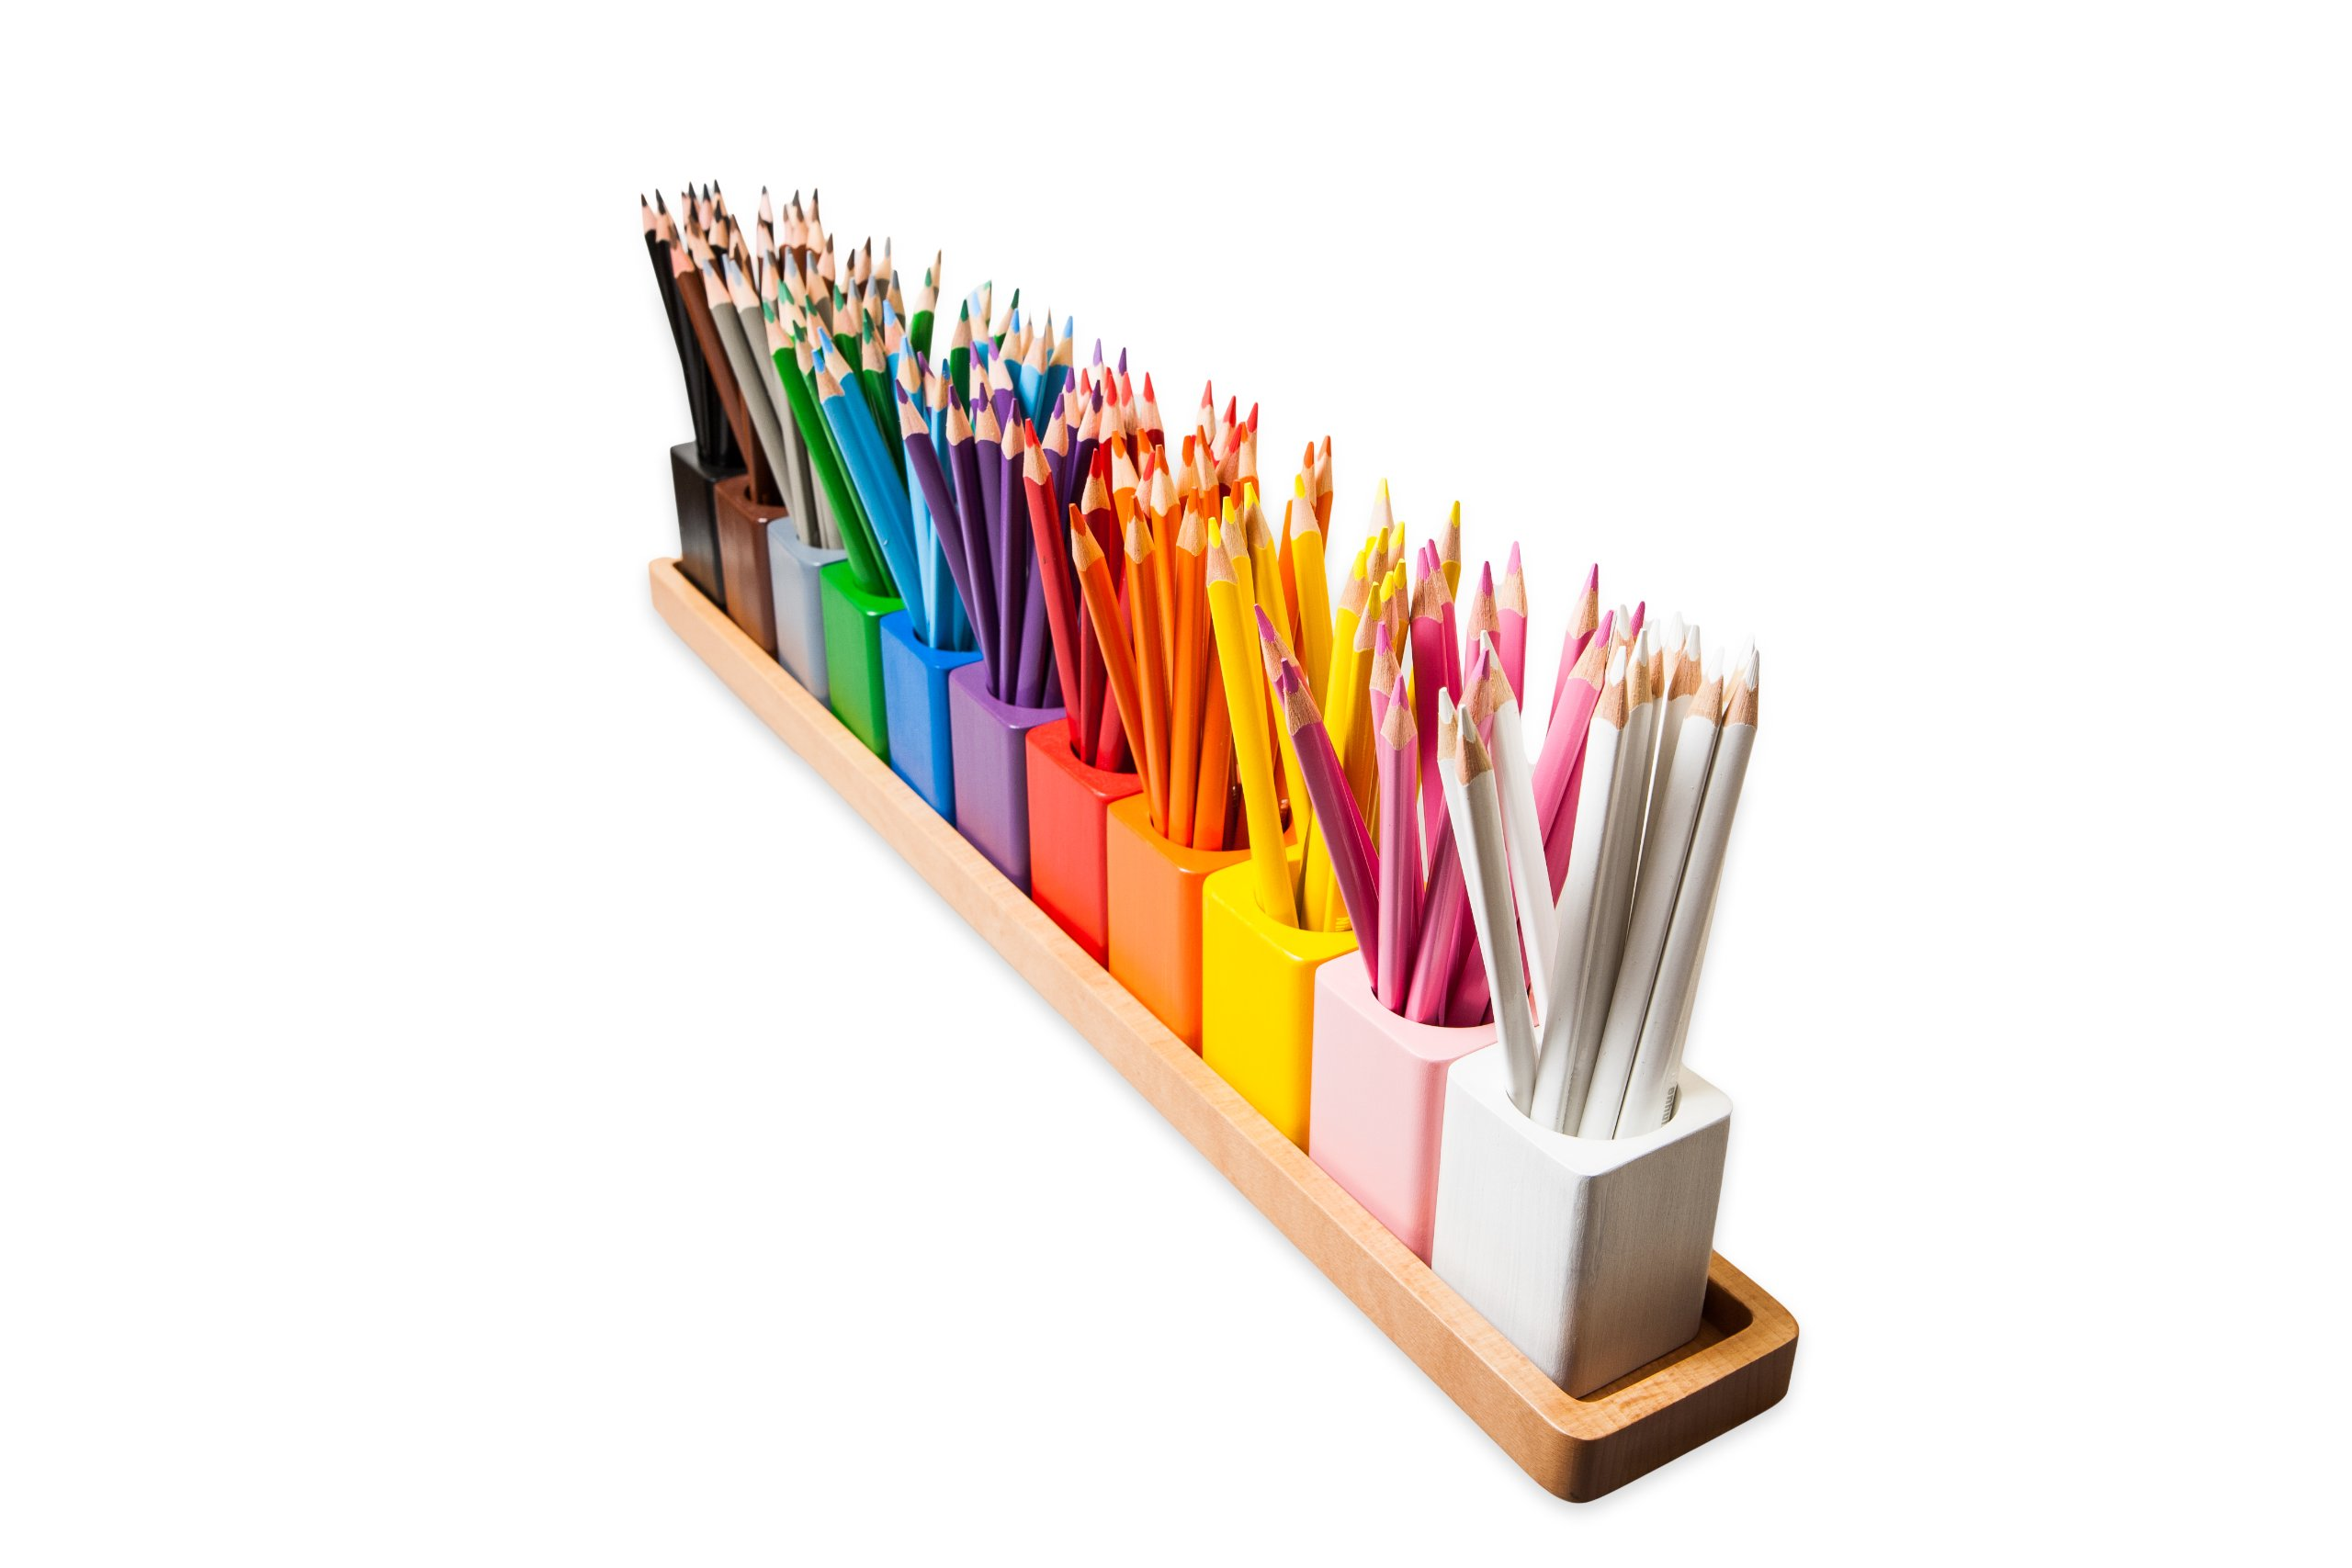 Amazing Child Montessori Pencil Holders On A Wooden Stand - PENCILS NOT INCLUDED